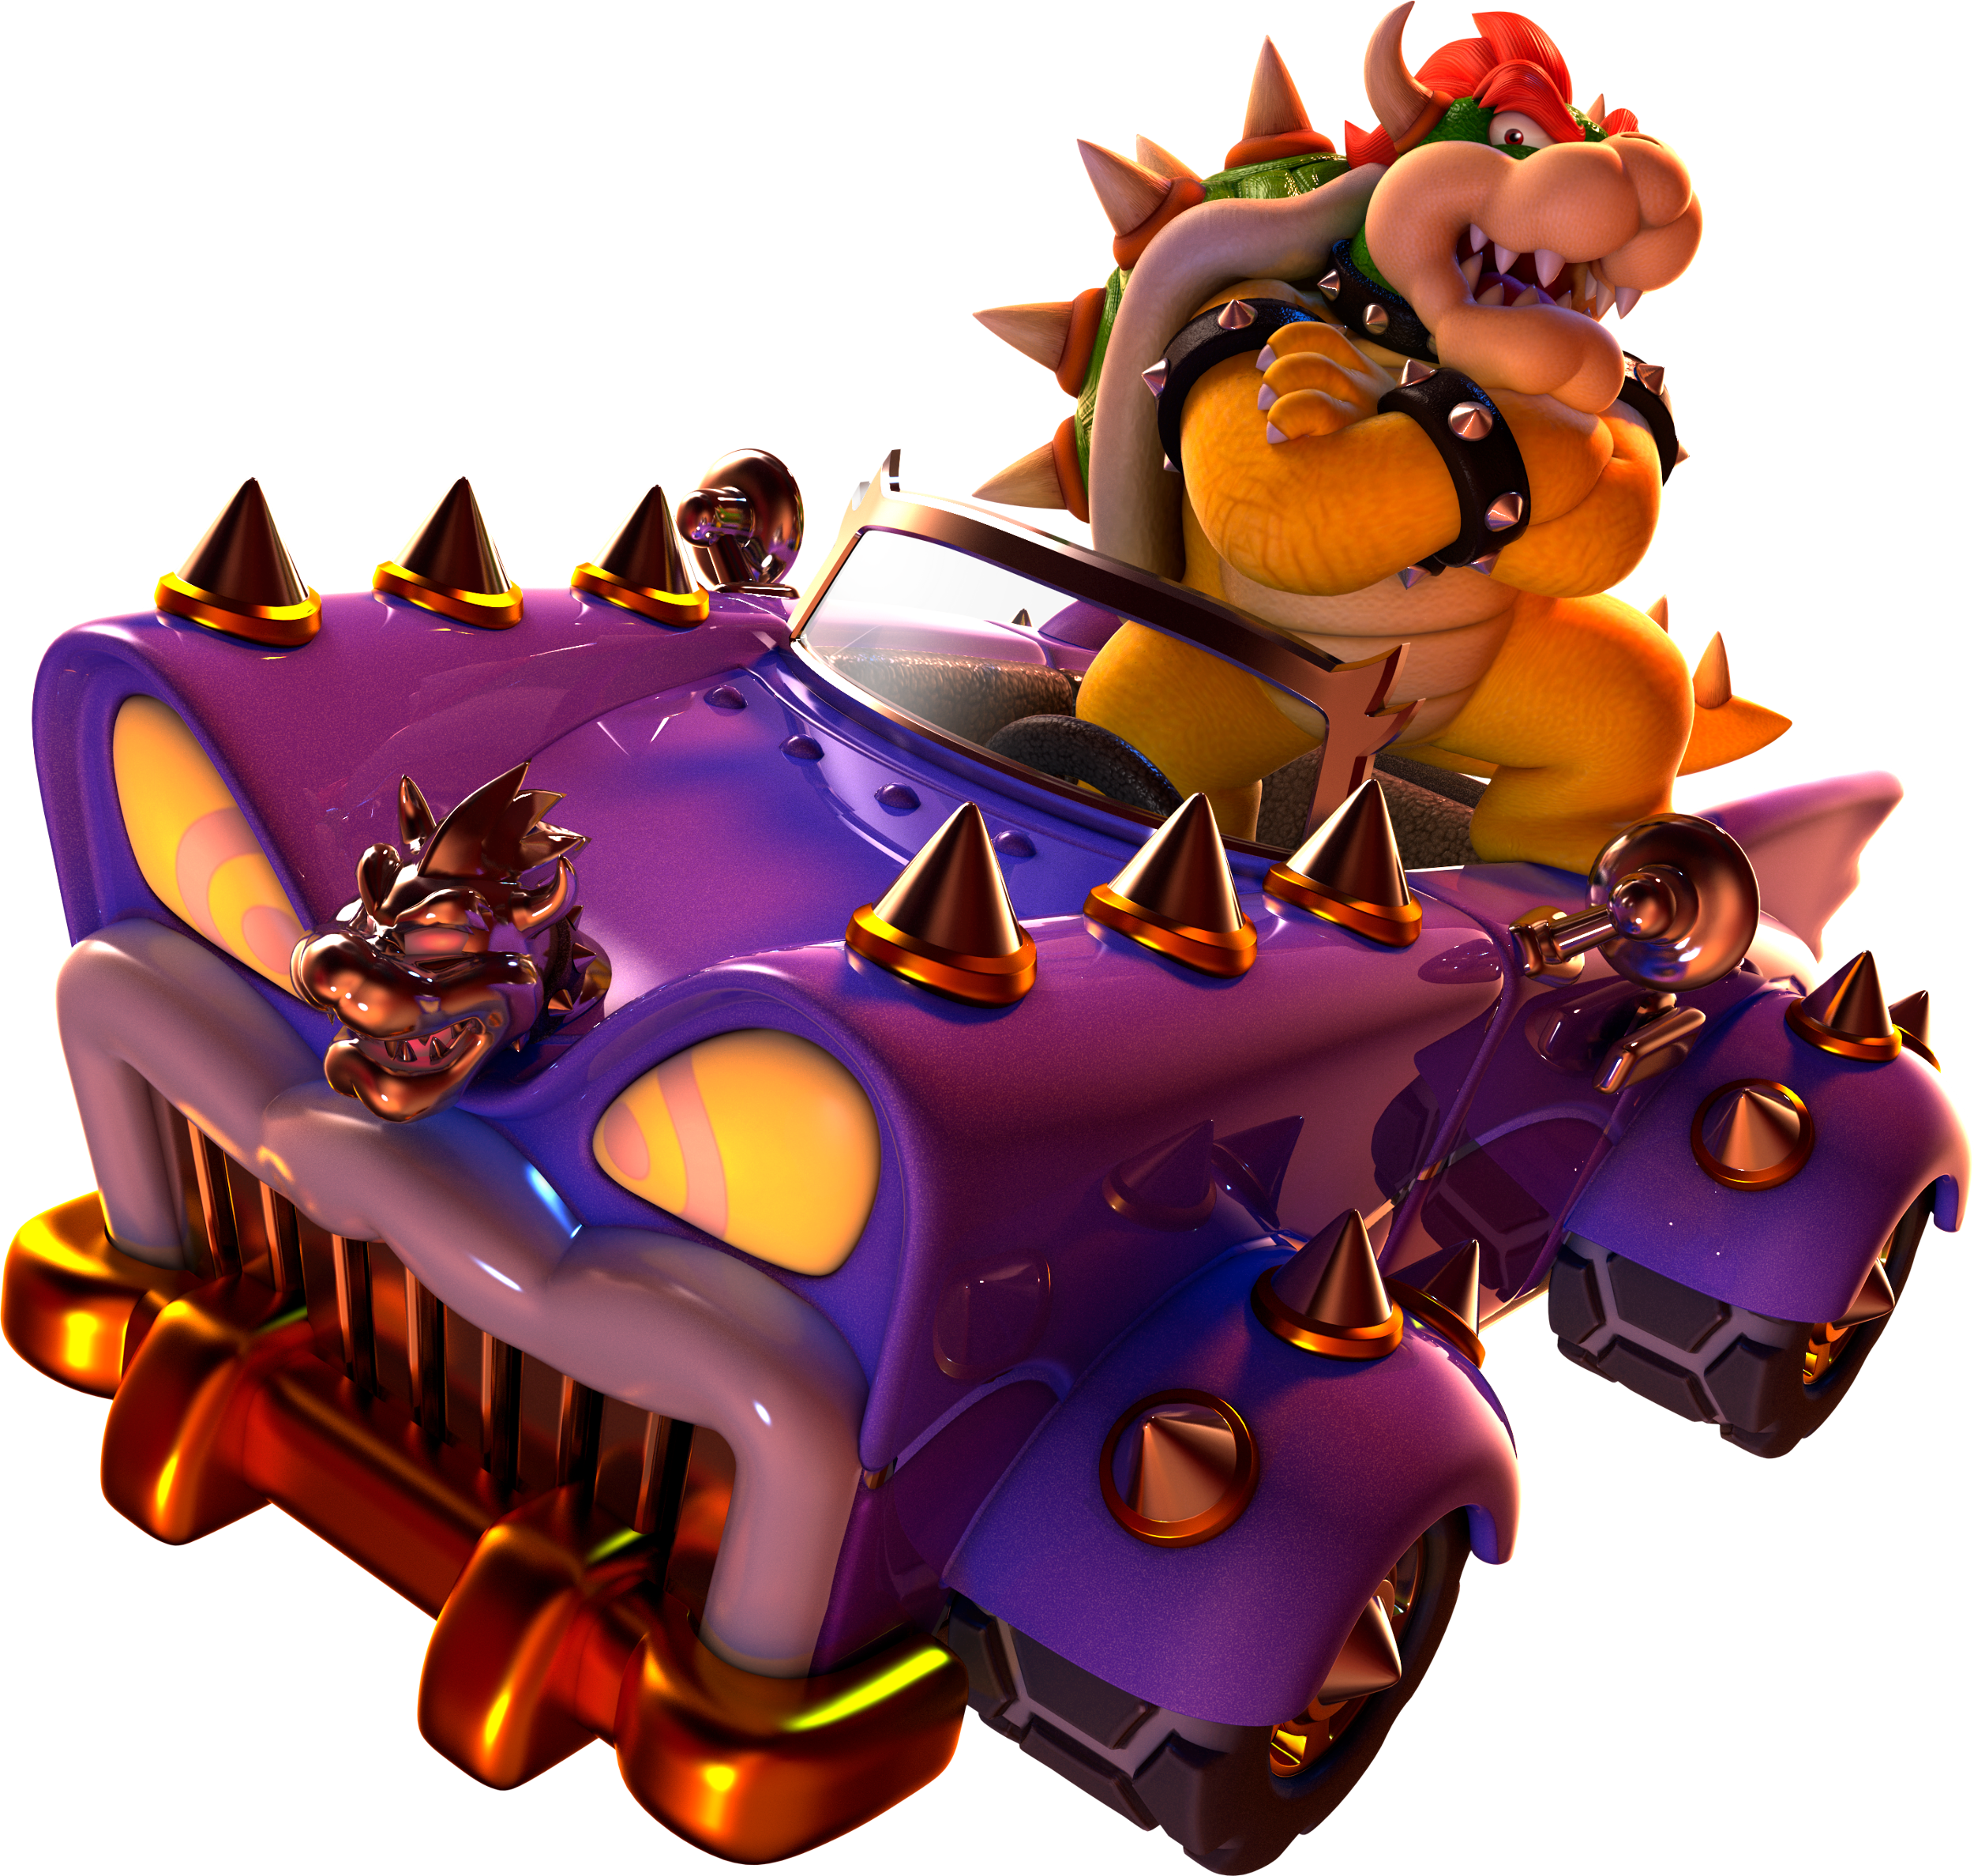 I'm glad it's Dry Bowser as the Bowser Clone we got